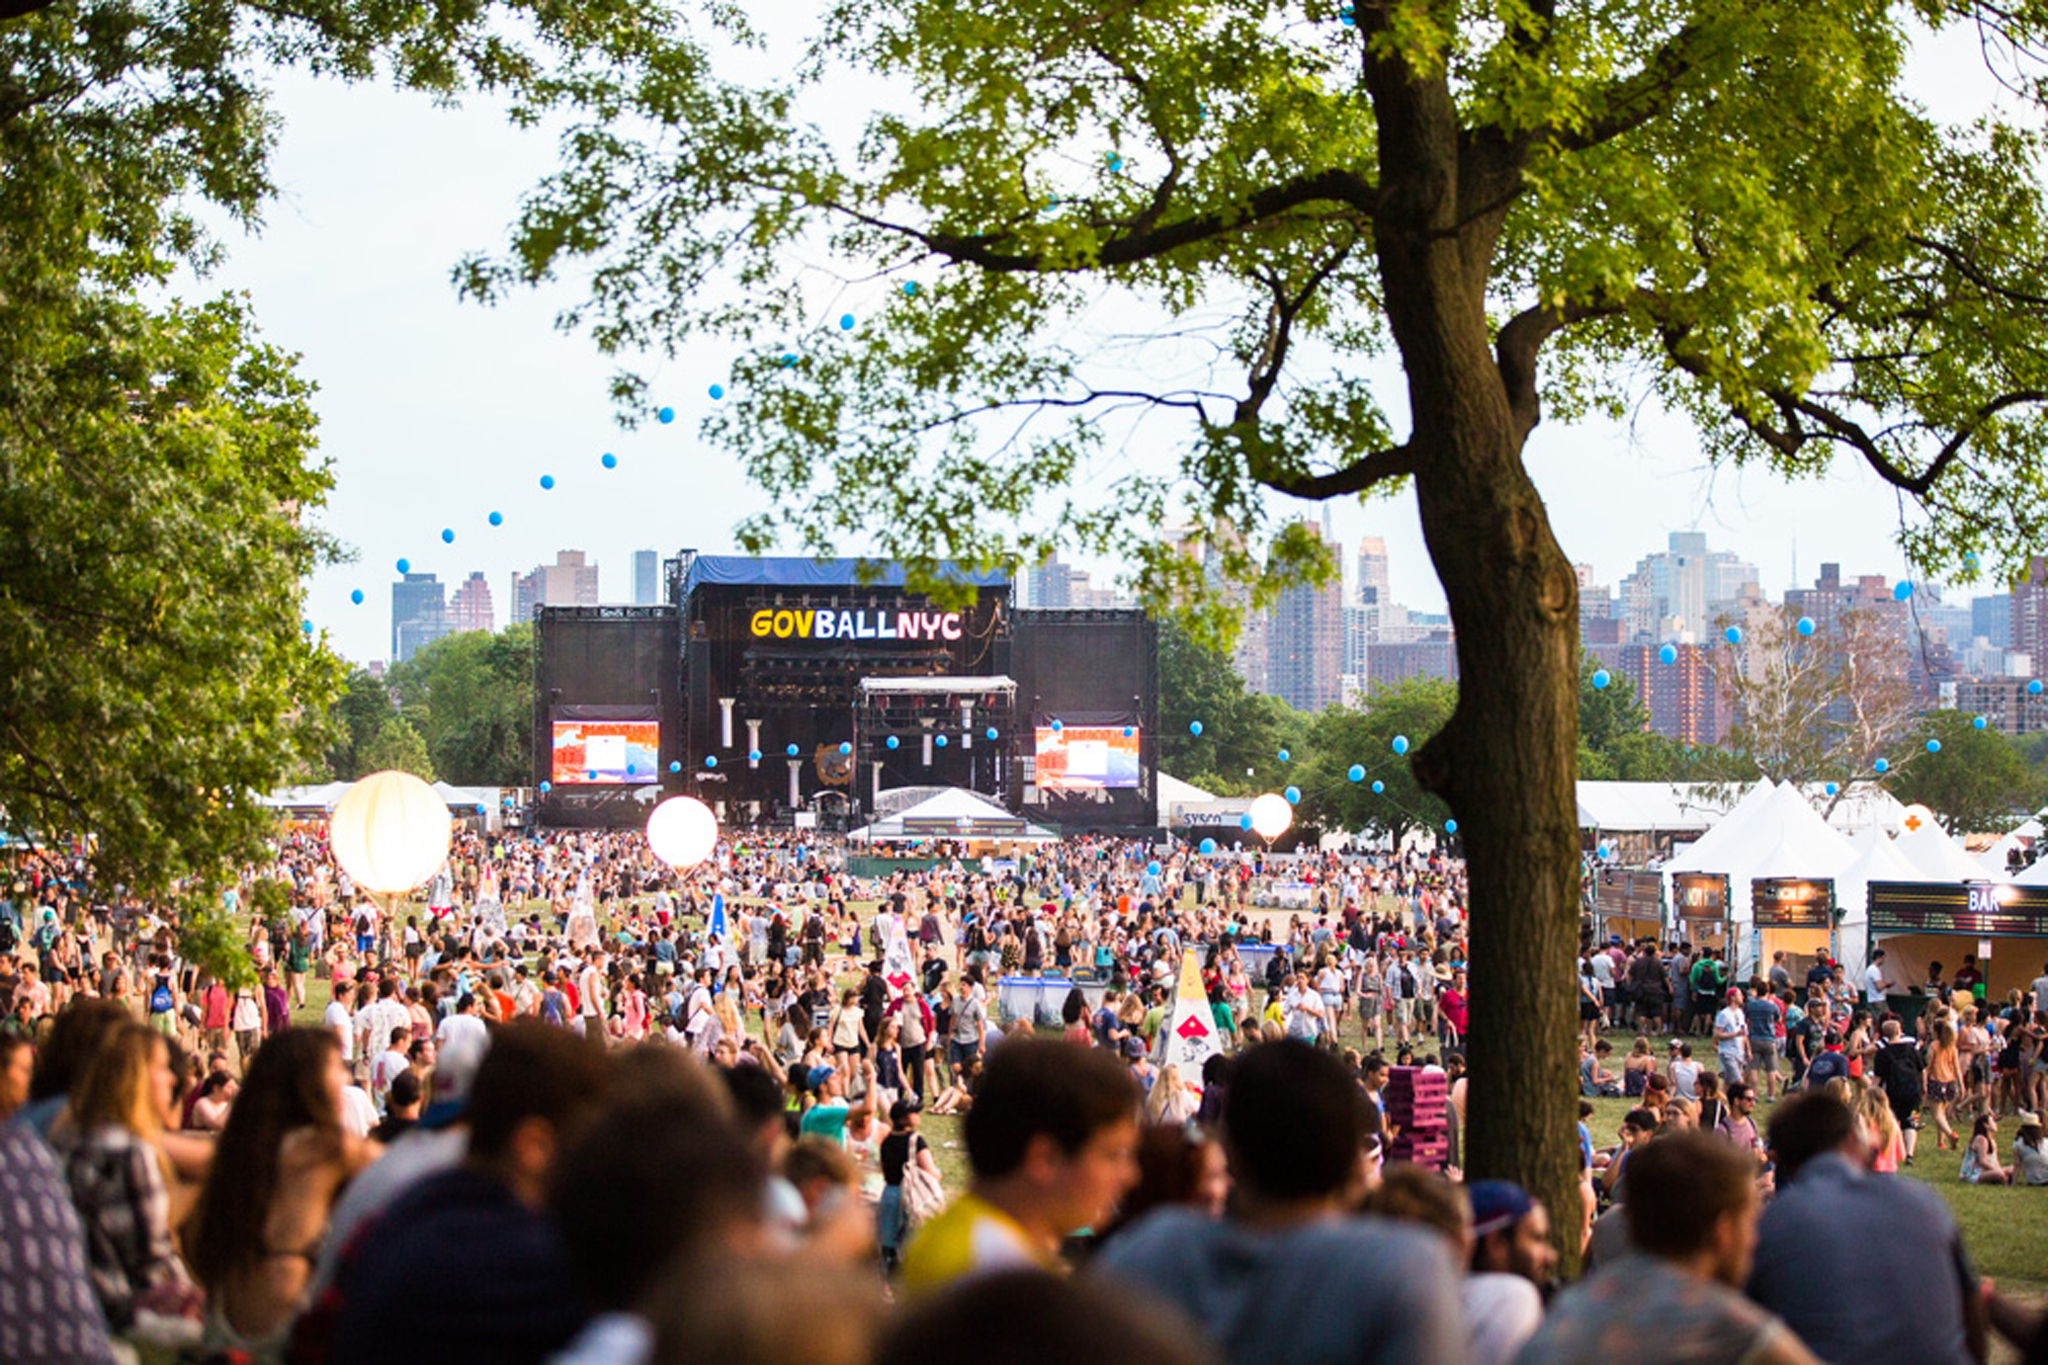 Get 3-day tickets to Governors Ball for $150 today